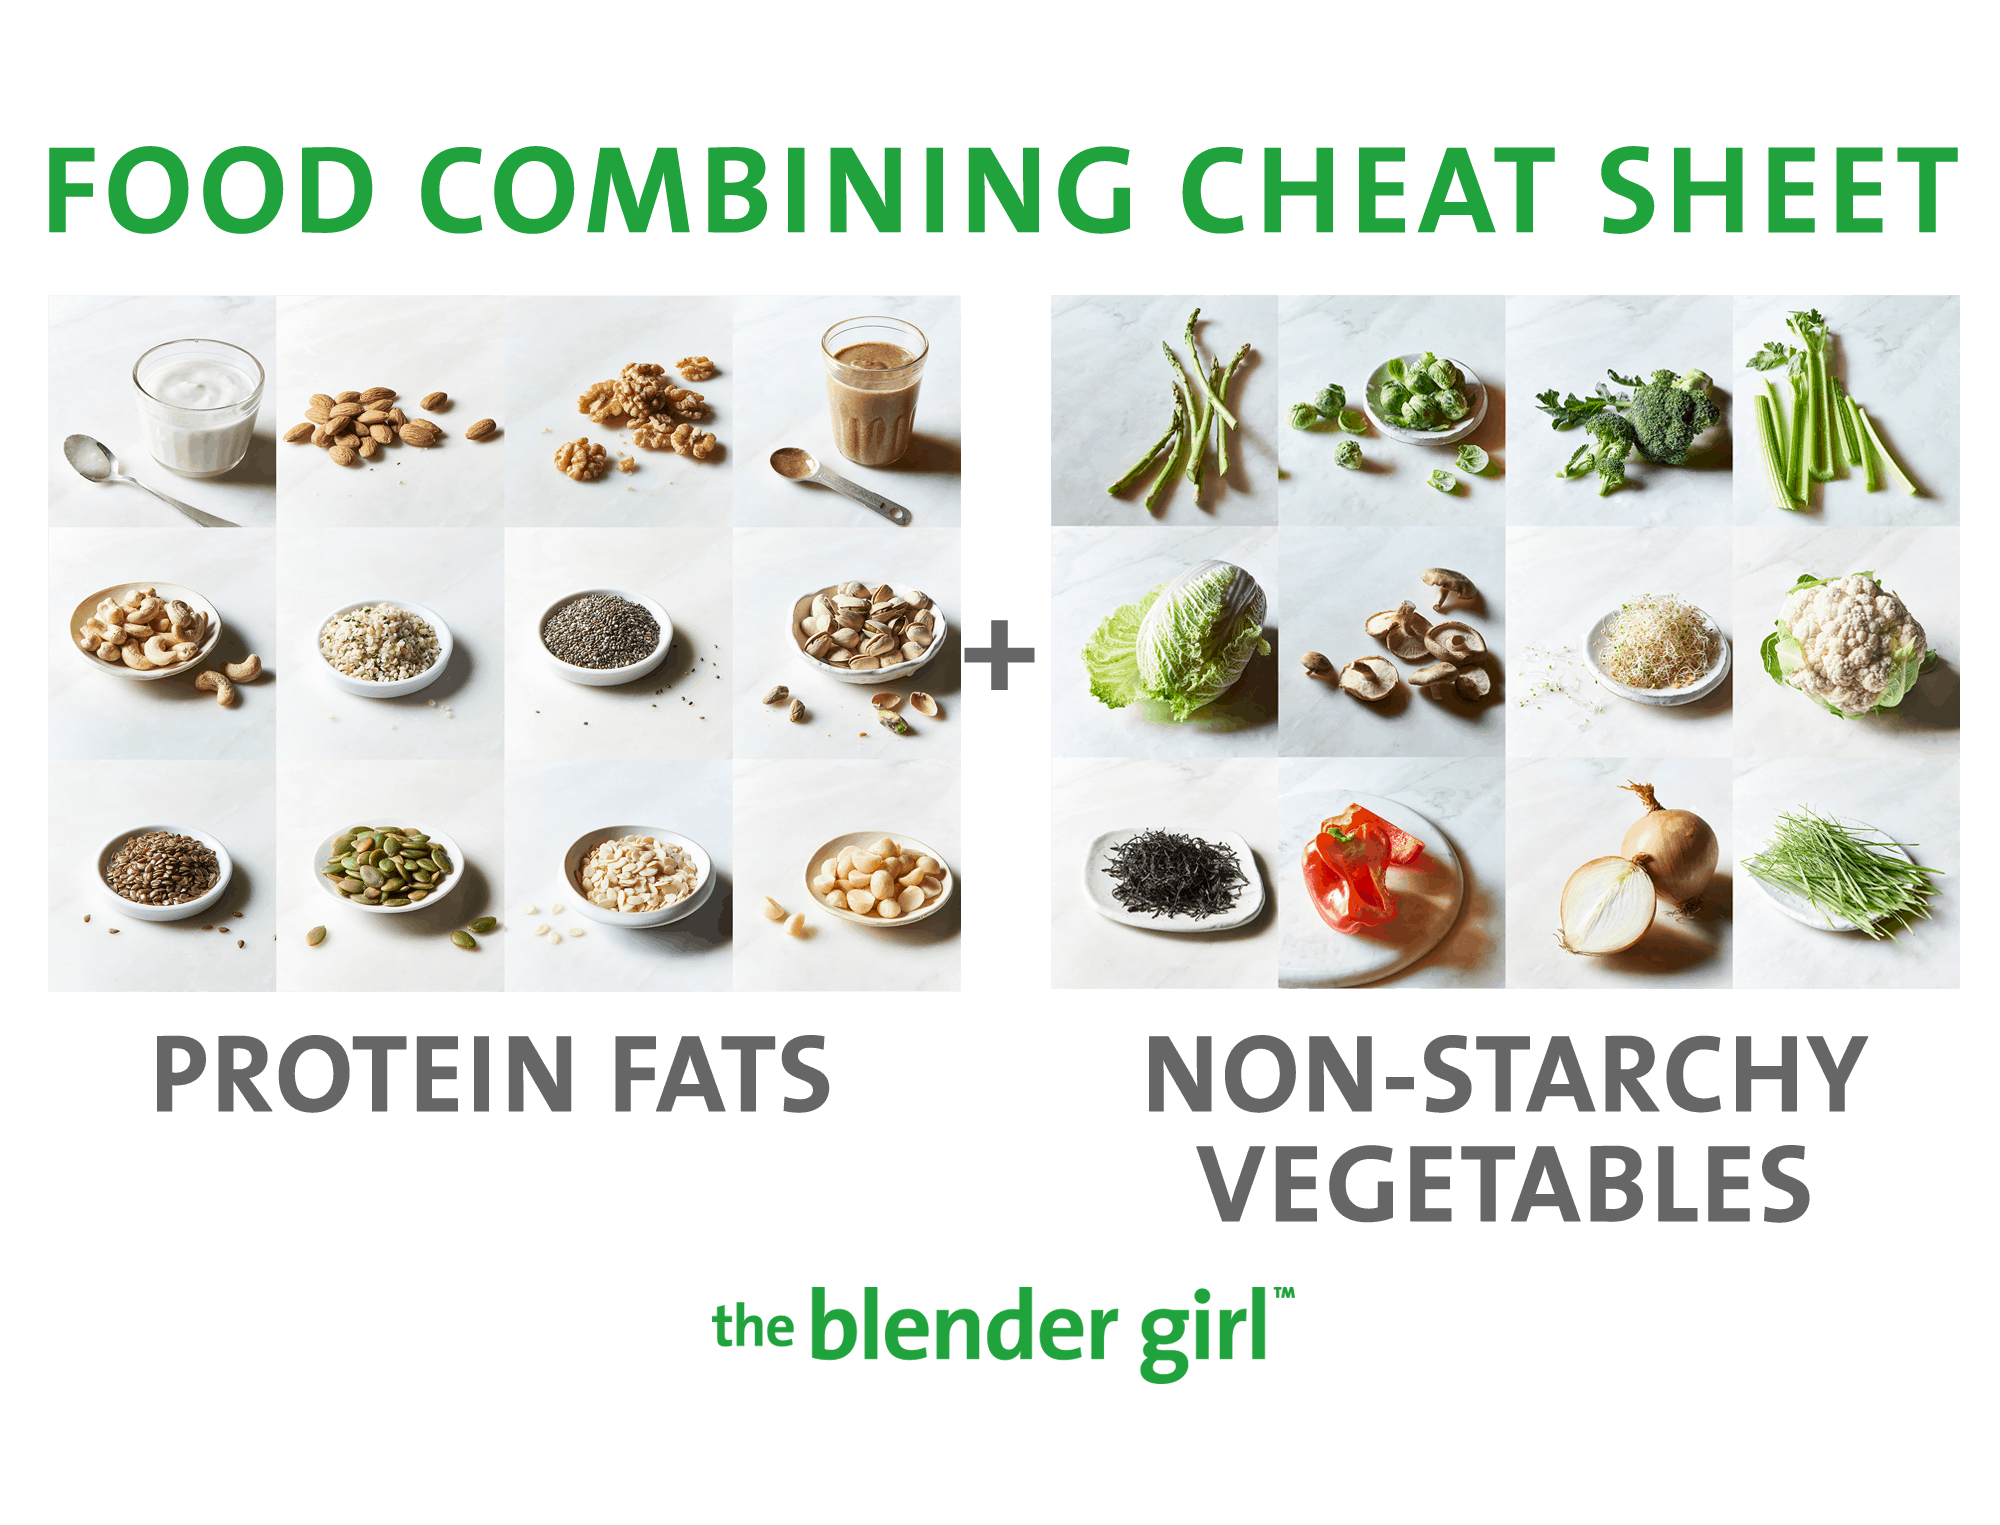 Food Combining A Guide With Food Combining Charts The Blender Girl Food Combining Food Combining Chart Food Combining Diet